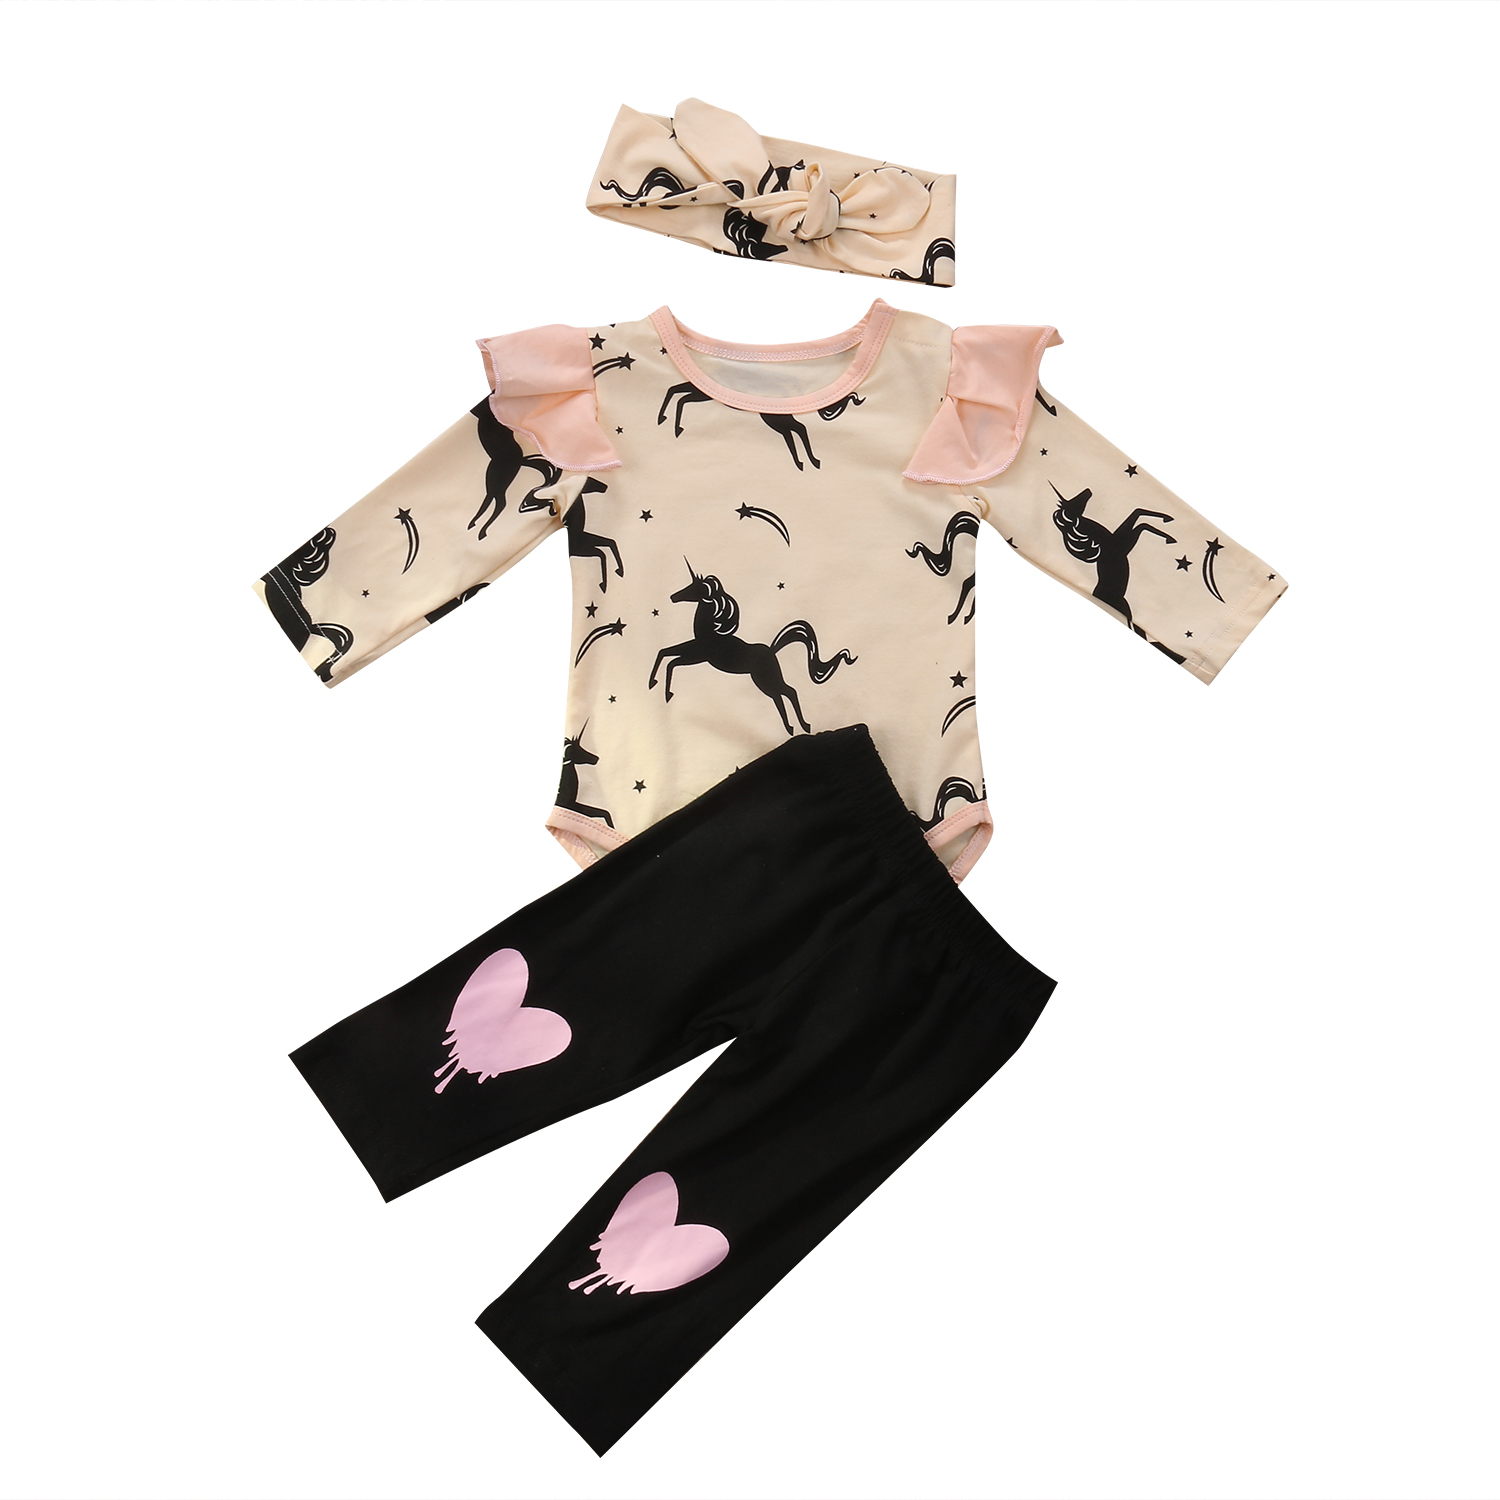 3 Pcs Babies Girls Unicorn Heart Clothing Set Newborn Infant Baby Girl Kids Bodysuit Top+Long Pants Outfit Clothes pink newborn infant baby girls clothes short sleeve bodysuit striped leg warmers headband 3pcs outfit bebek clothing set 0 18m